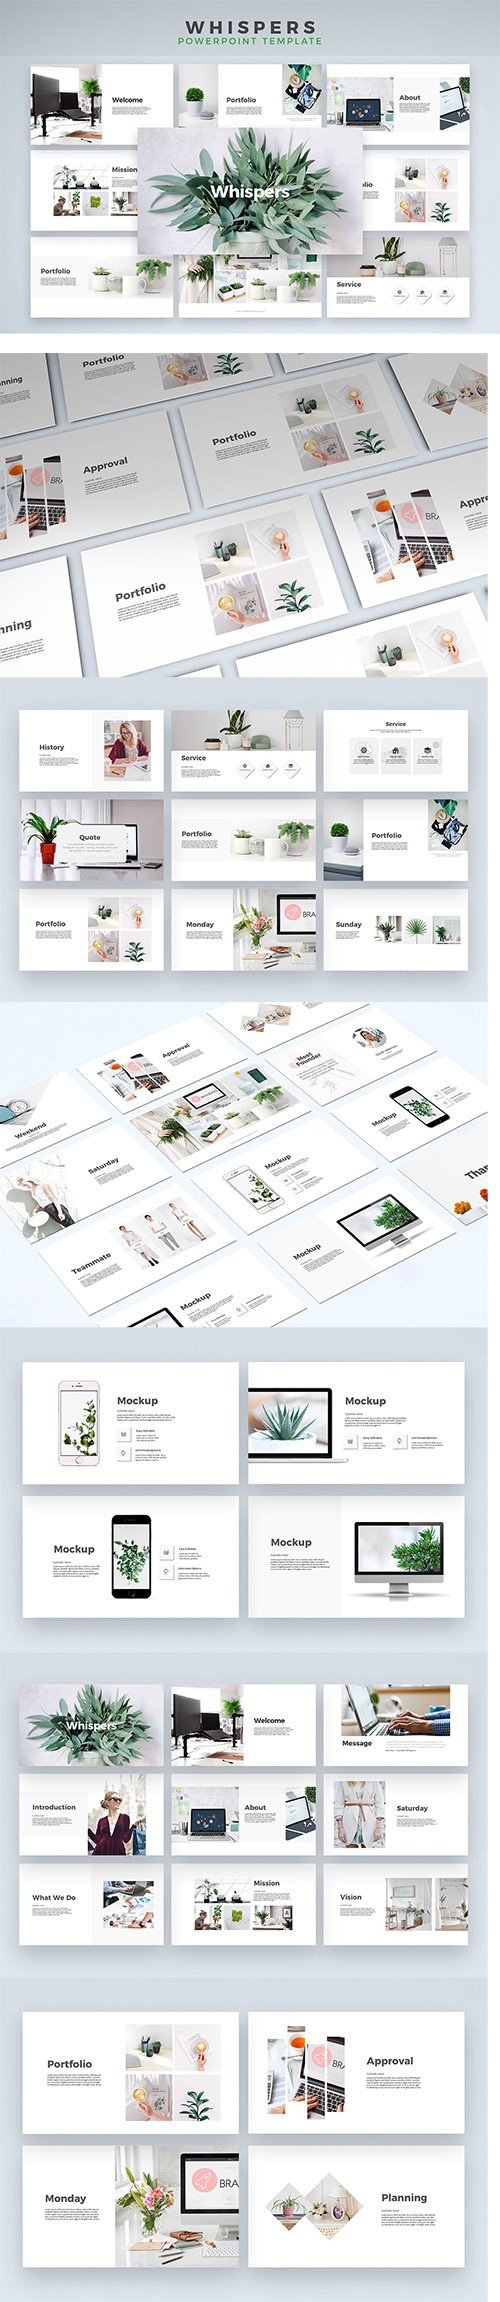 Whispers - Powerpoint Template